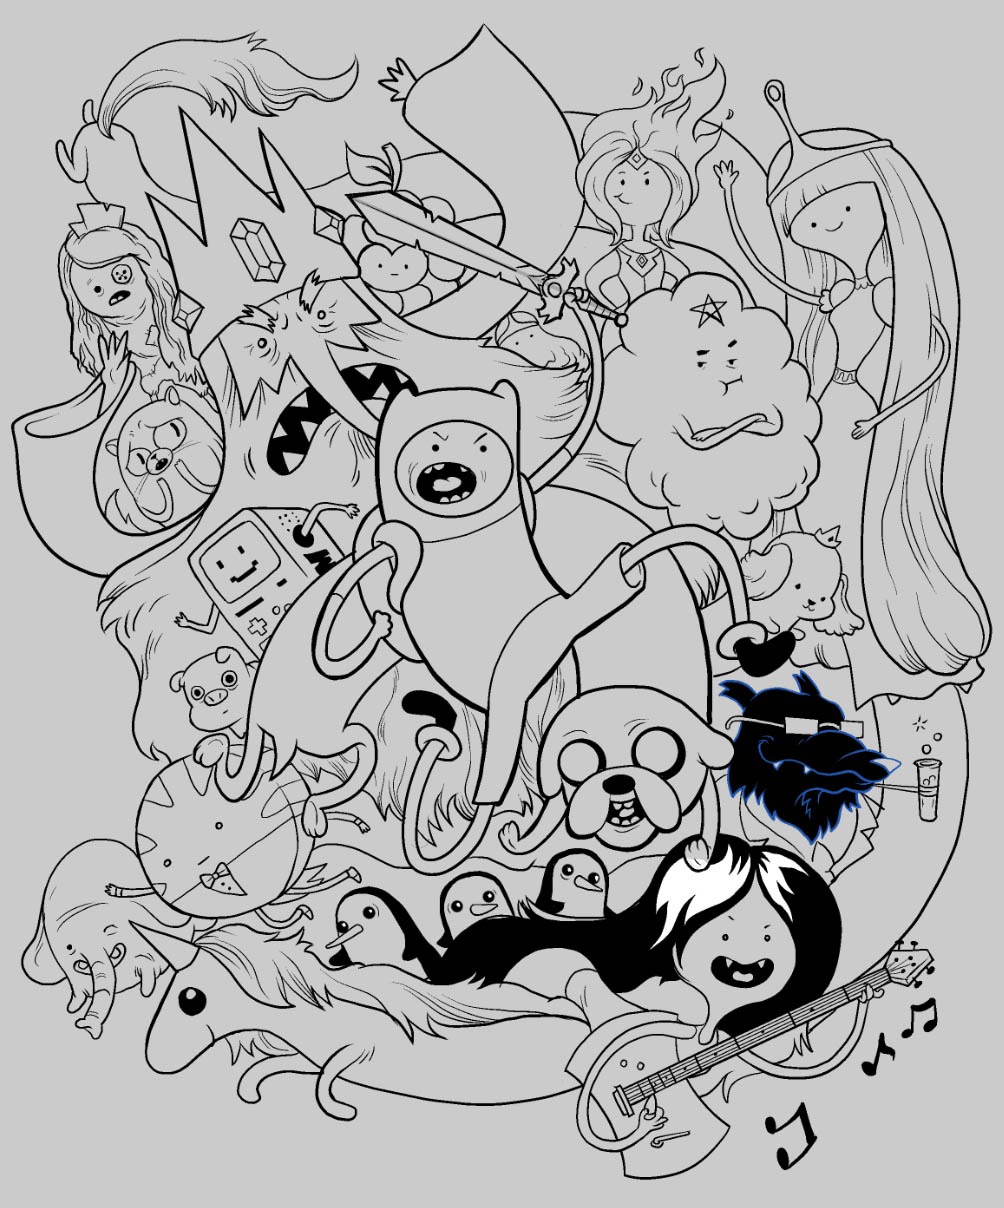 adventure time characters coloring pages - photo#22